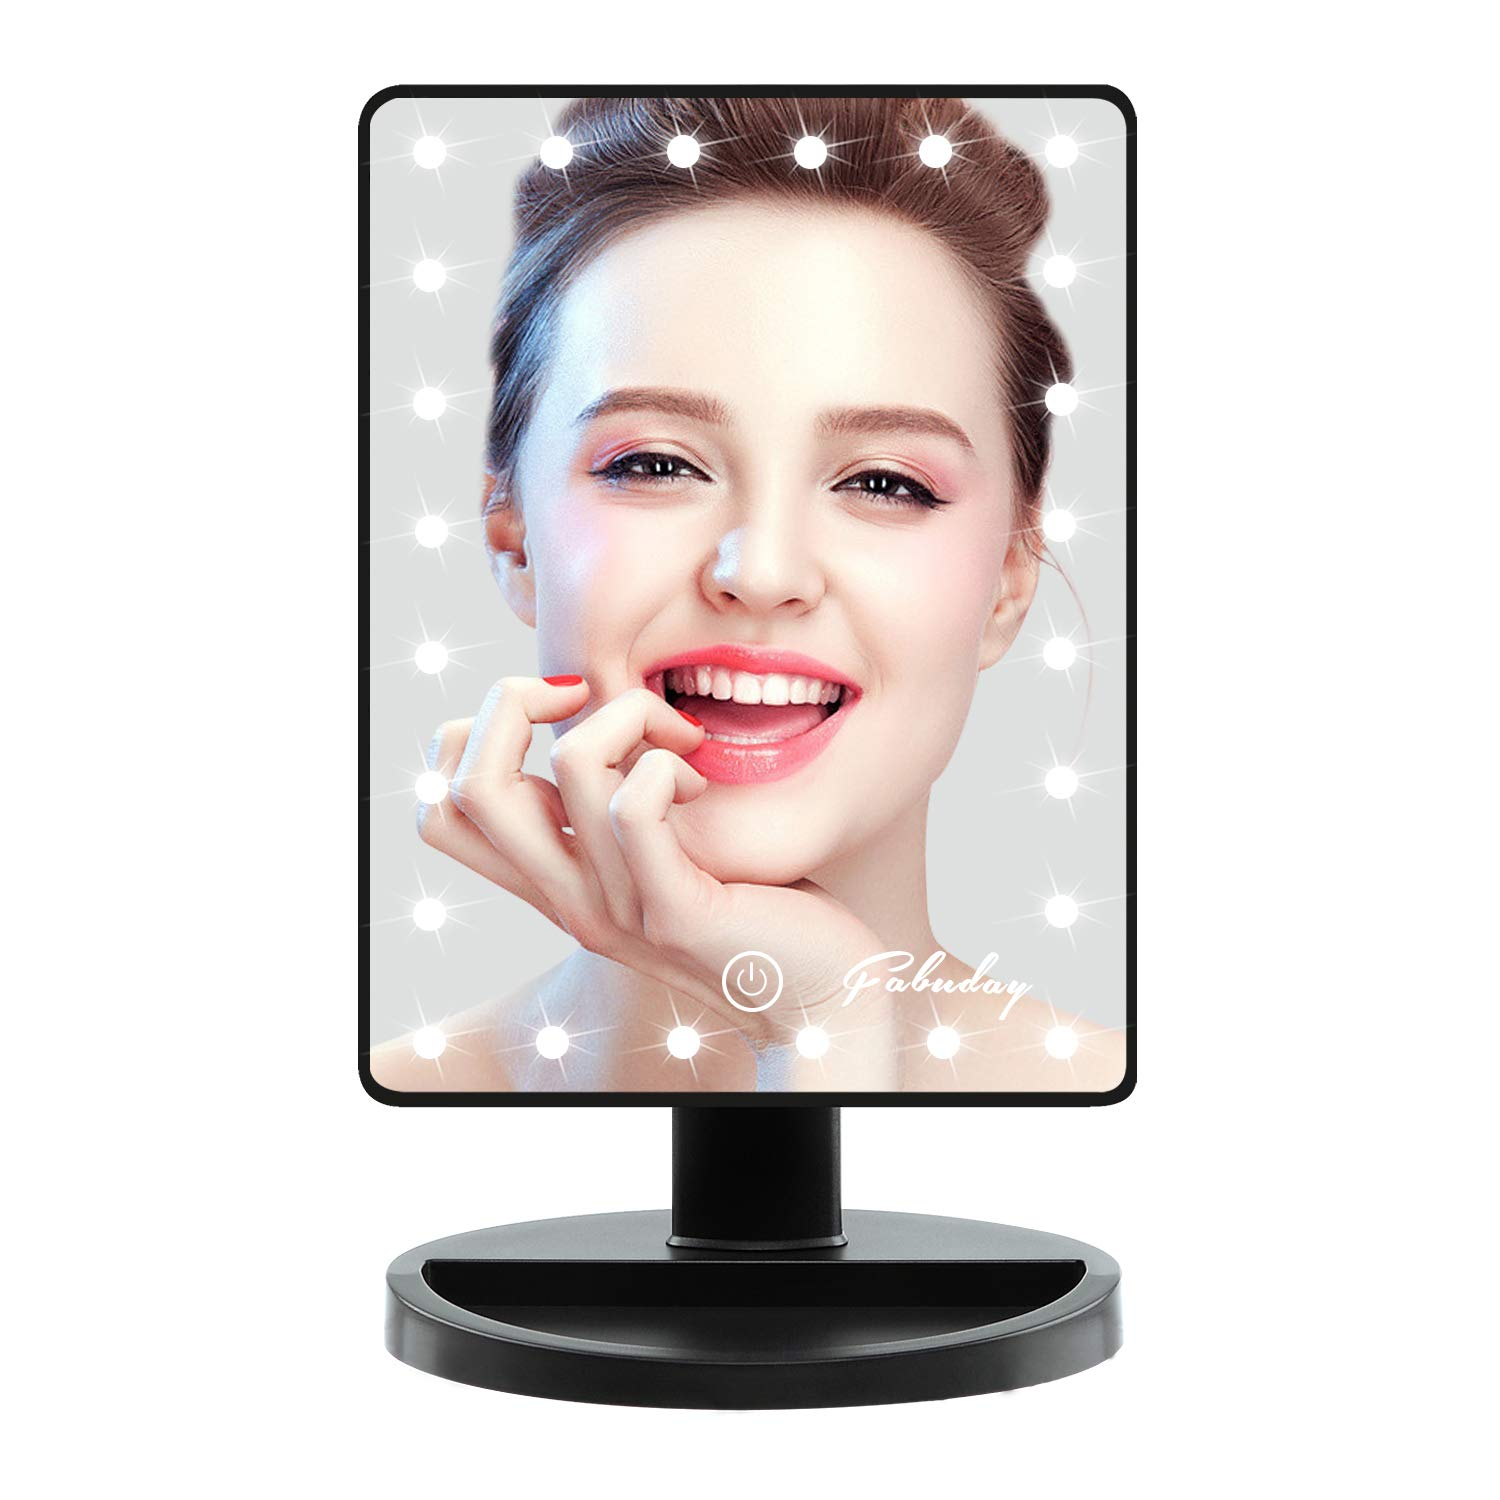 Fabuday Makeup Mirror with Lights, Lighted Makeup Mirror Touch Screen, 24 Led Makeup Mirror Light Adjustable, Dual Power Operated, Color Boxed, Black by Fabuday